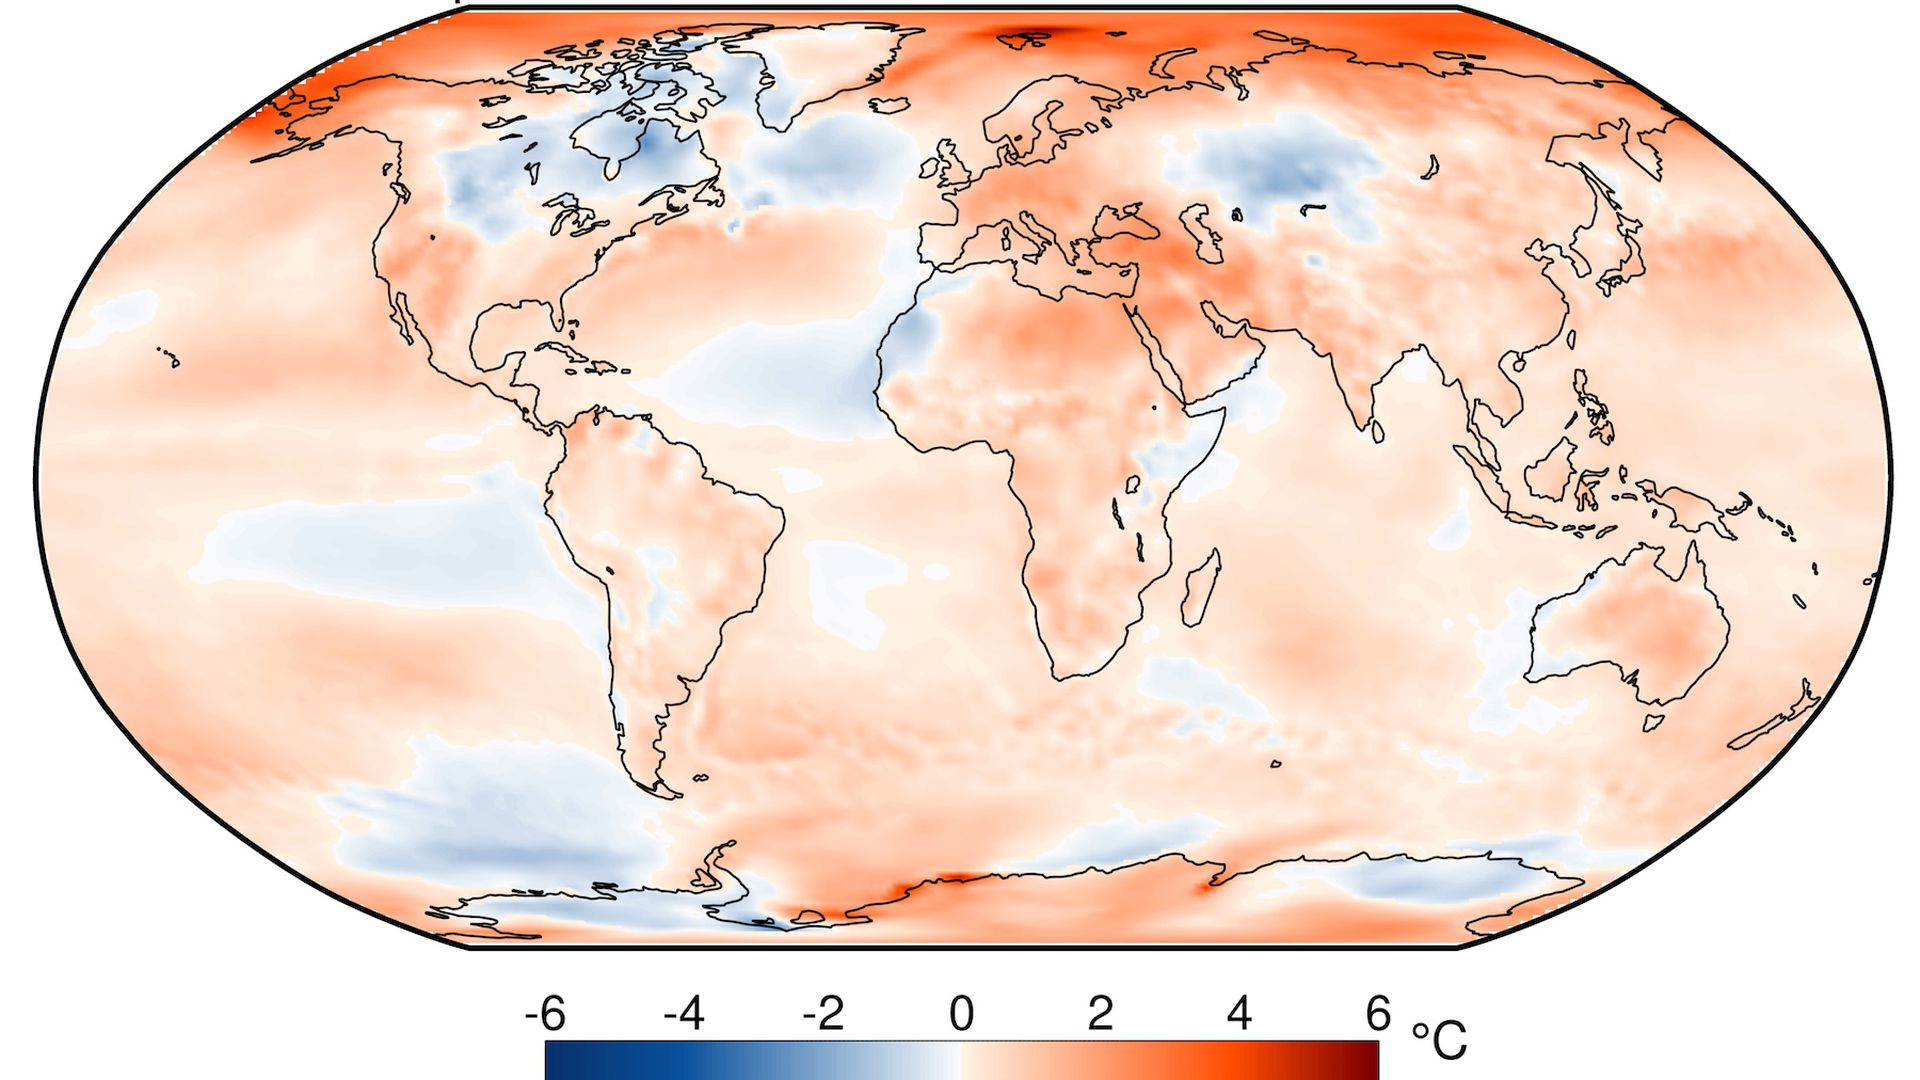 2018 was the fourth-warmest year on record, with unusual warmth blanketing the Arctic, Europe, and much of the rest of the globe.